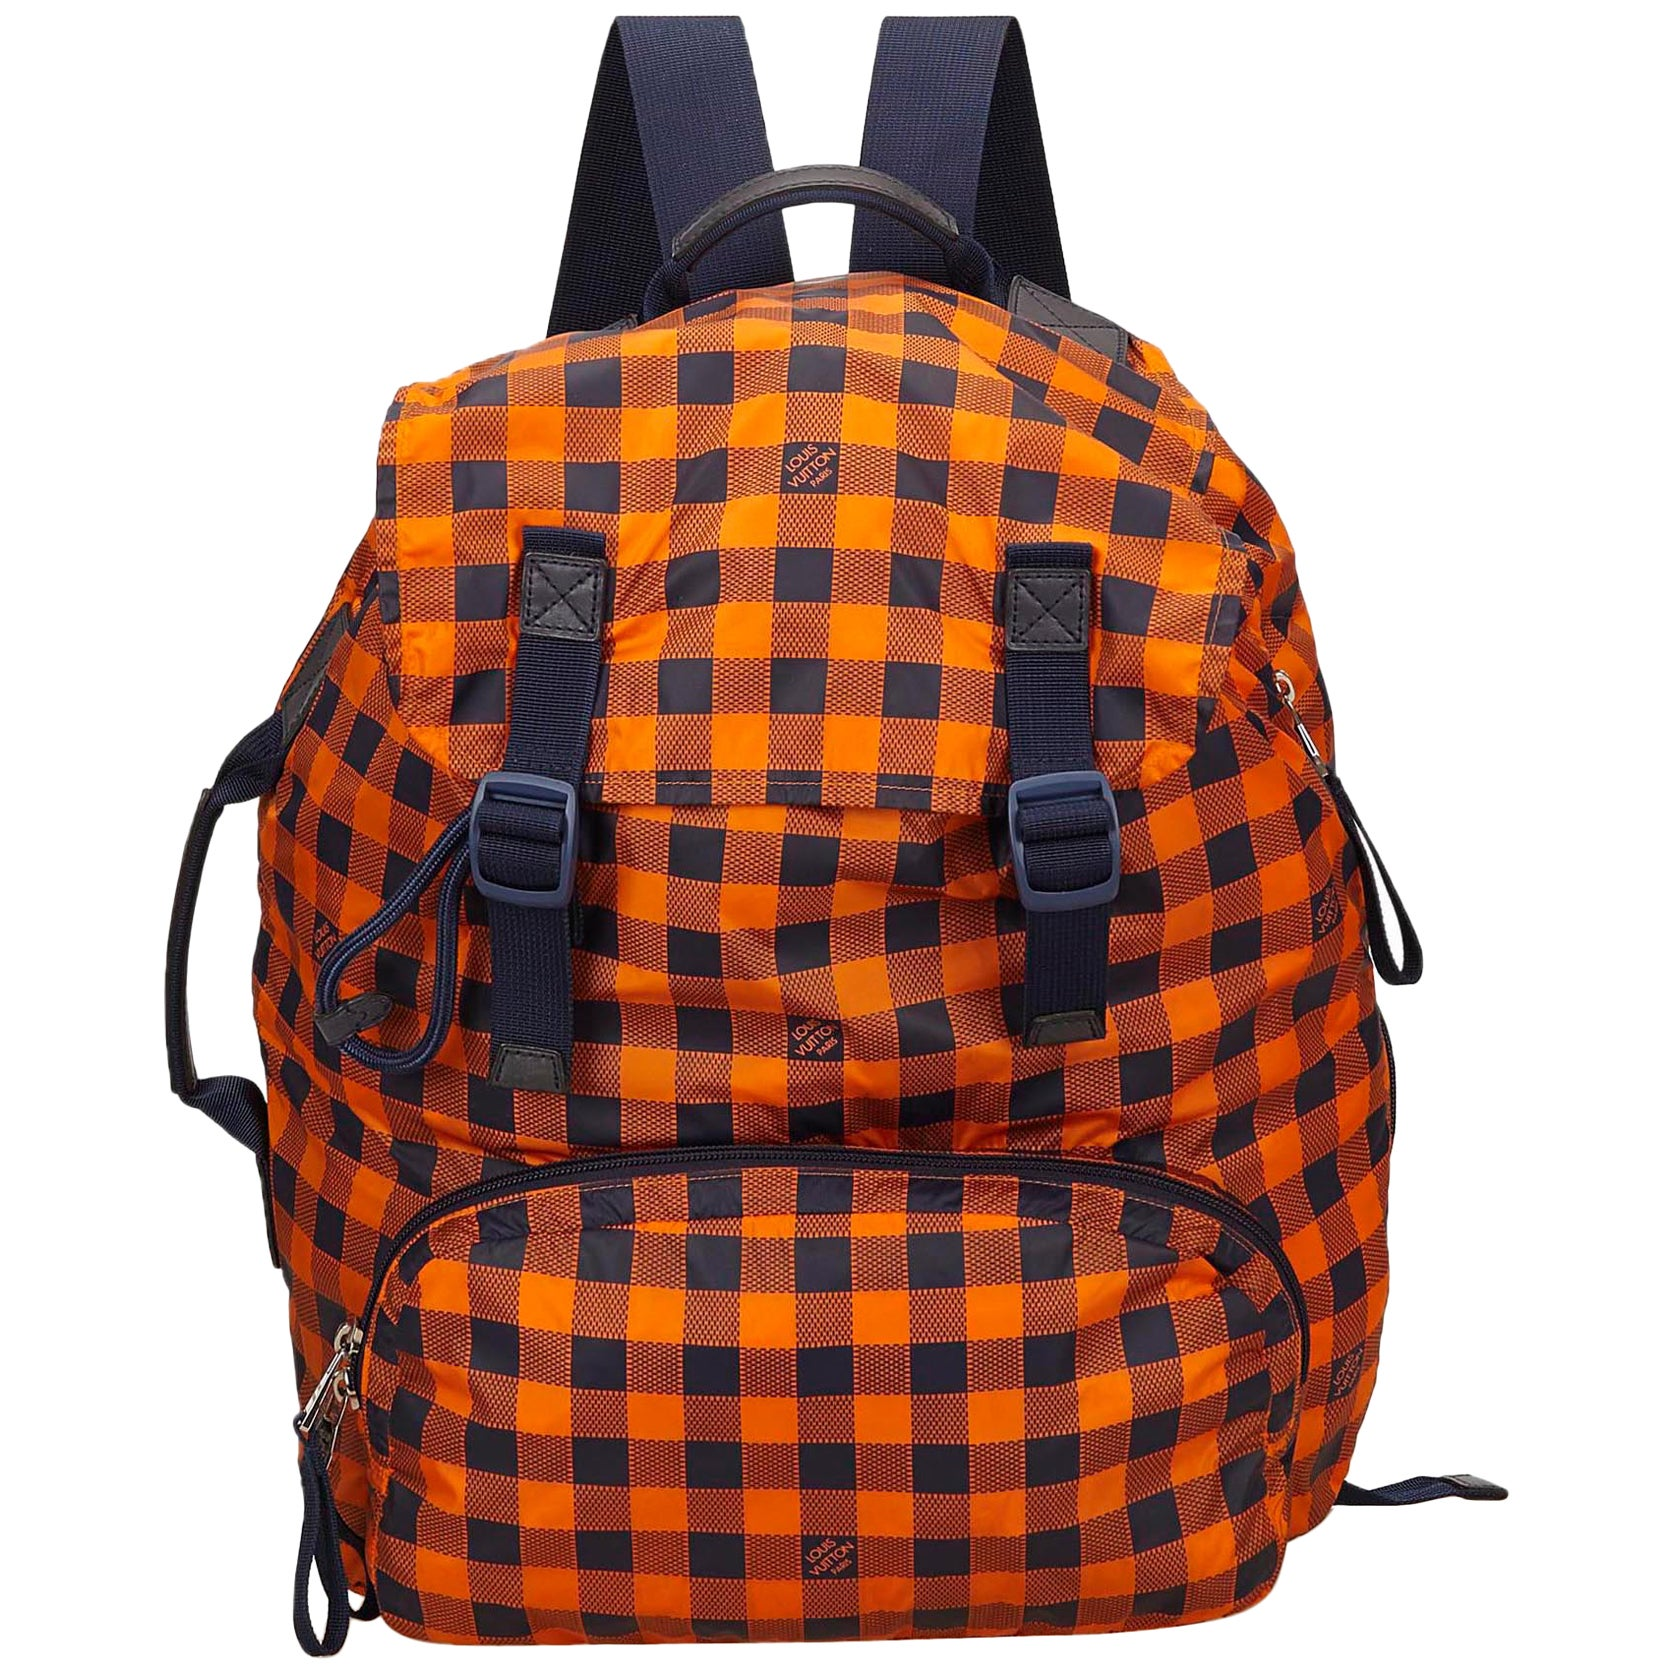 eba917a50562 Louis Vuitton Orange and Black Canvas Damier Adventure Backpack at 1stdibs